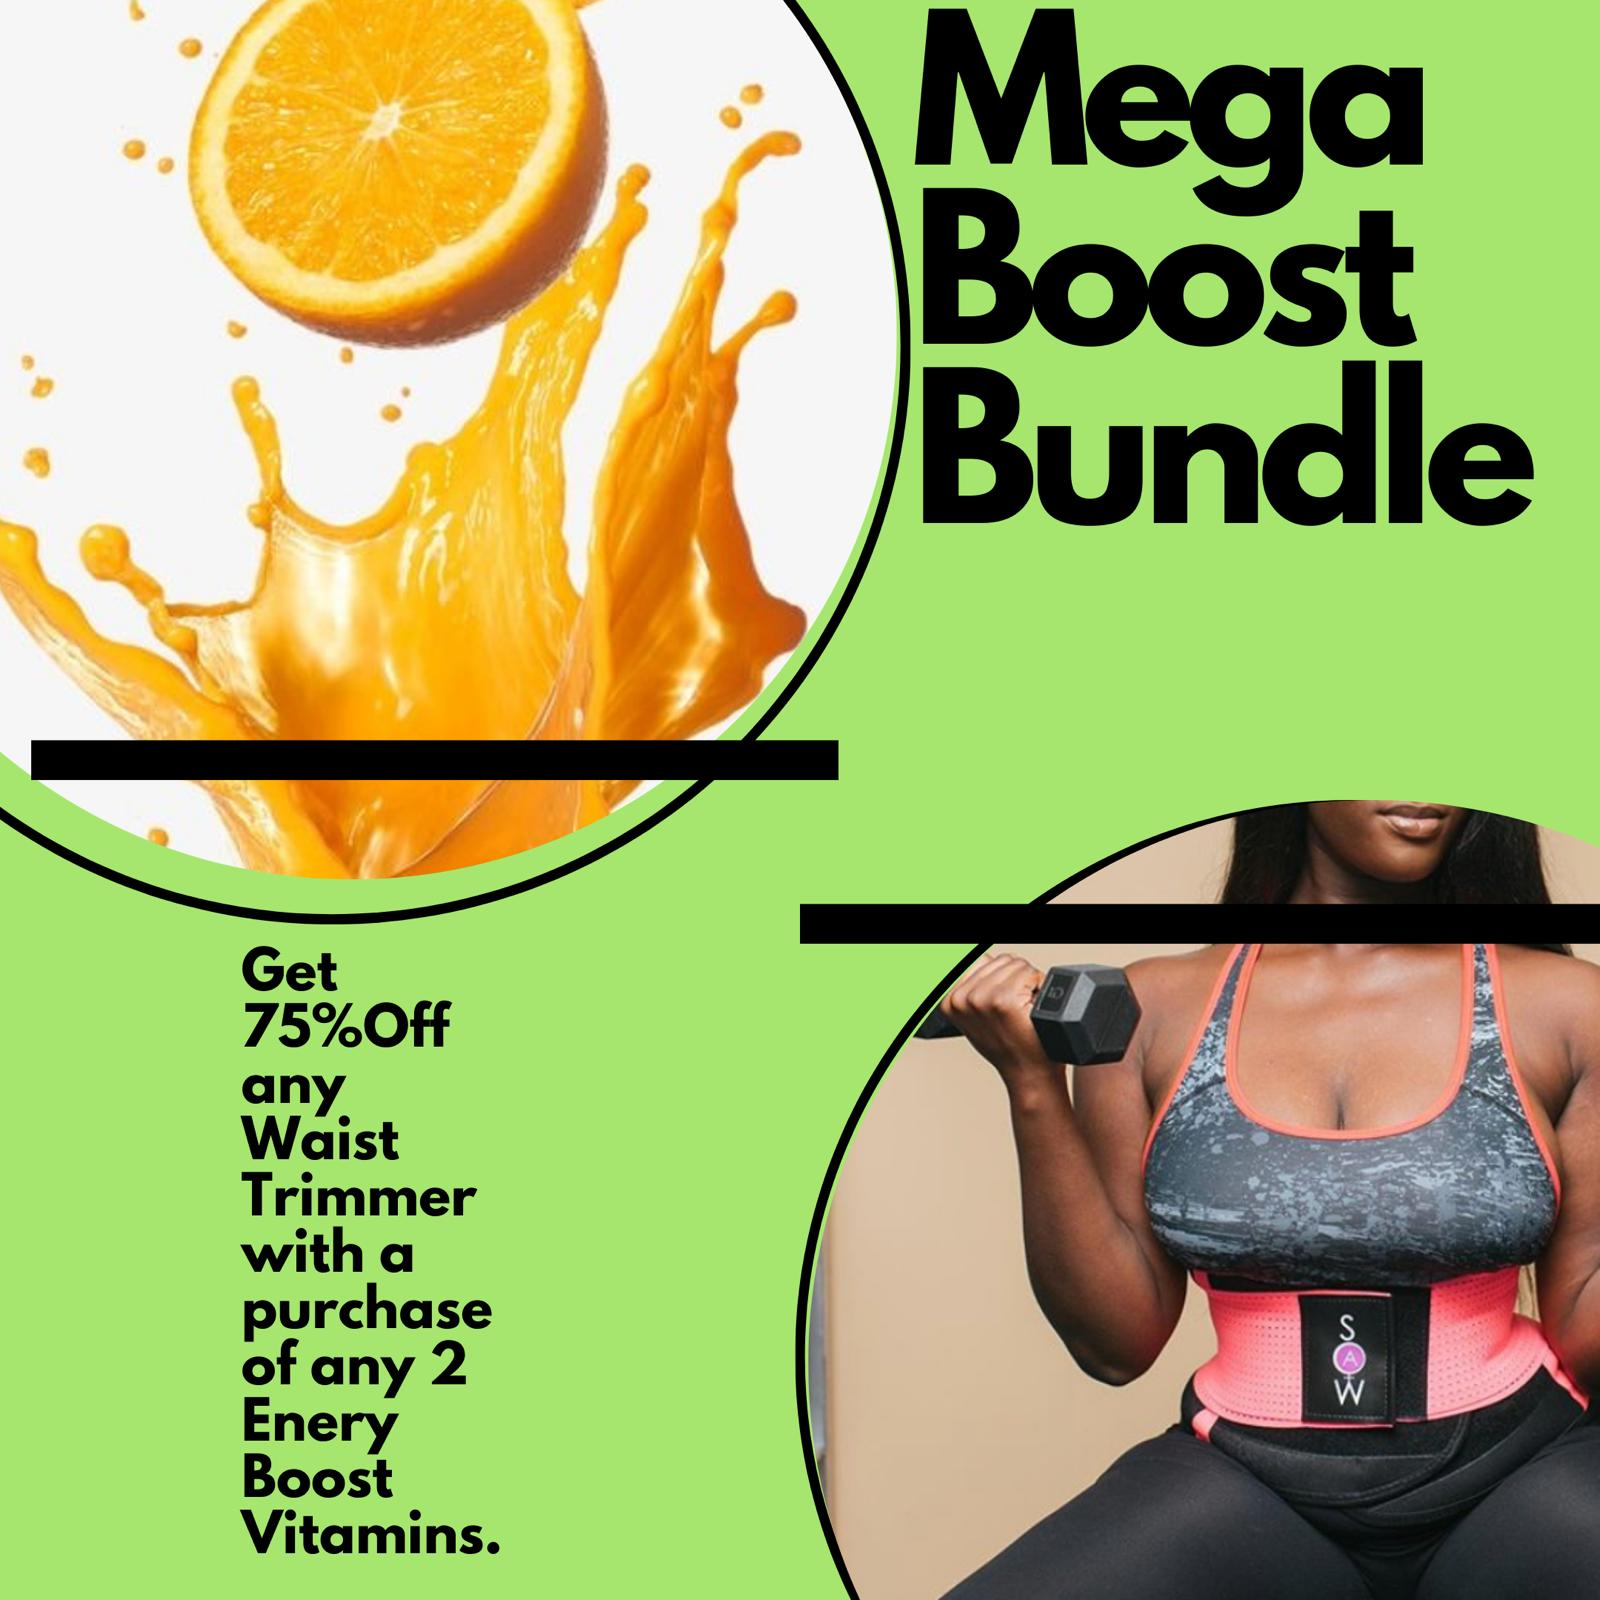 Mega Boost Bundle